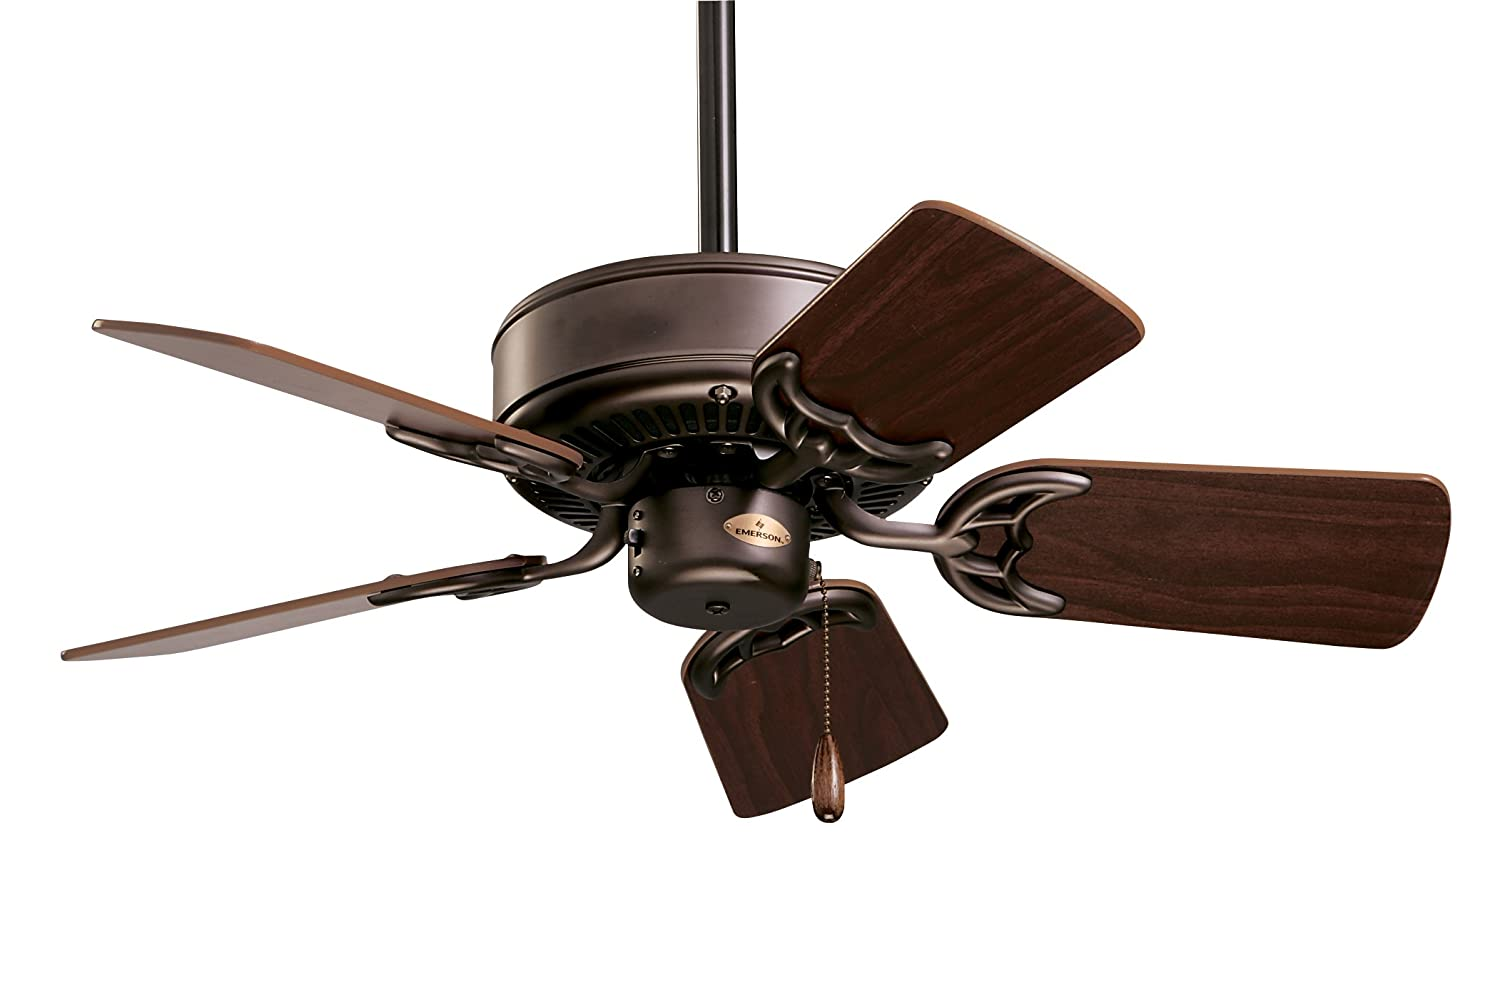 Com Emerson Ceiling Fans Cf702orb Northwind Indoor Fan 29 Inch Blades Light Kit Adaptable Oil Rubbed Bronze Finish Home Improvement